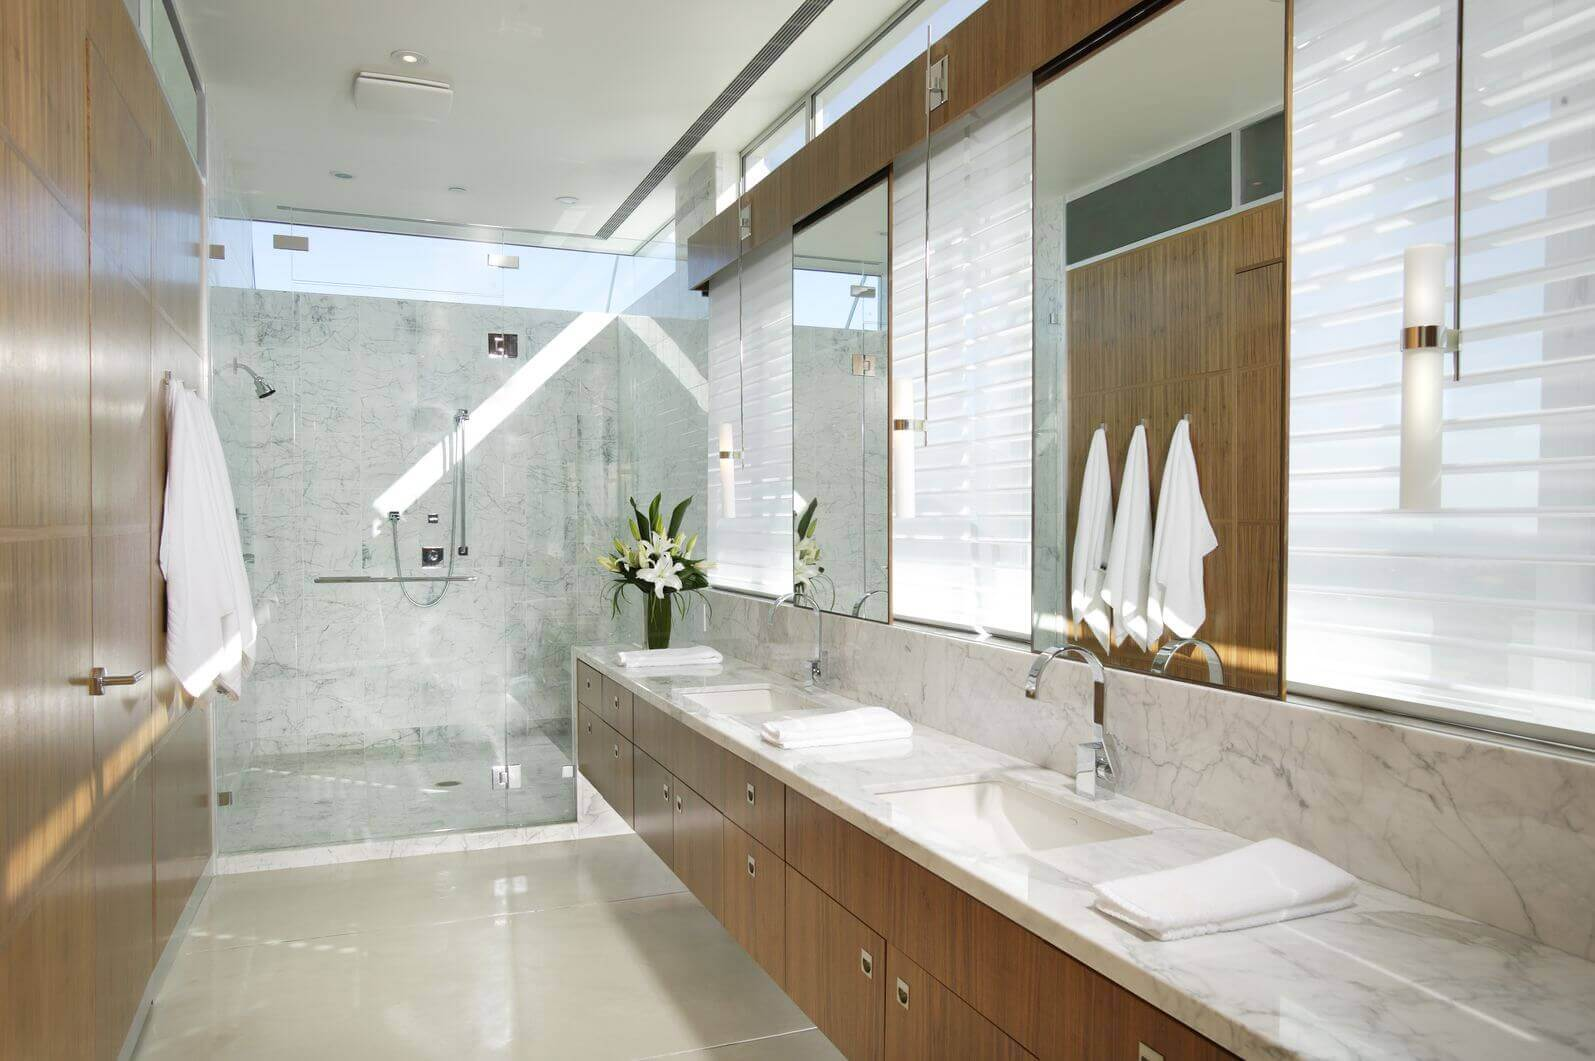 Long Bathroom Mirror 40 Luxurious Master Bathrooms Most With Incredible Bathtubs